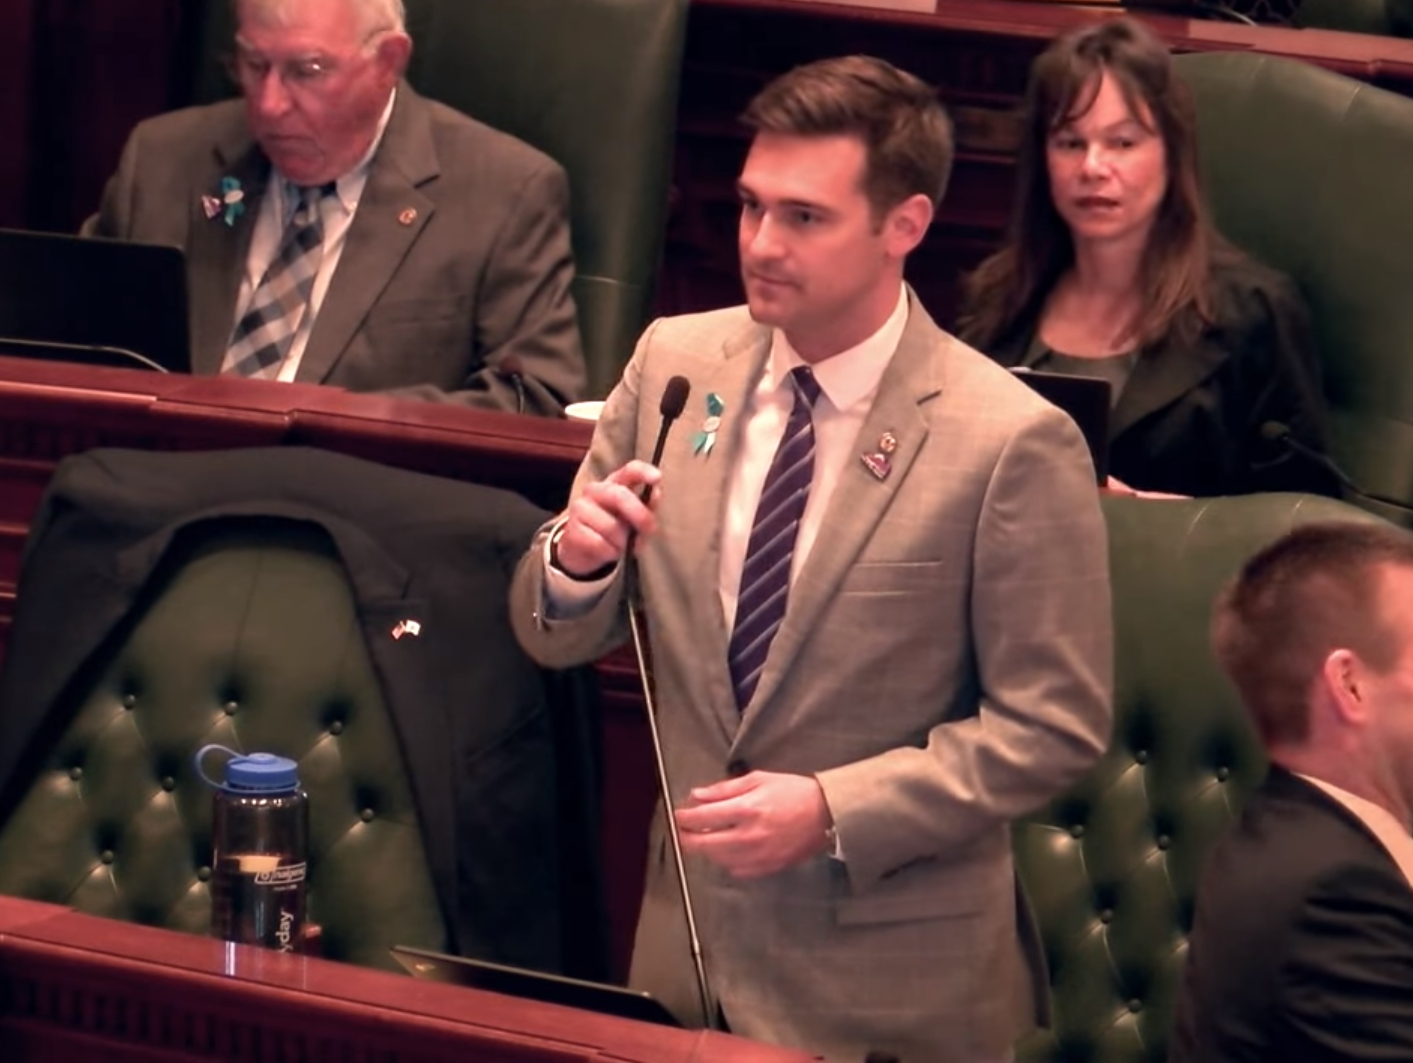 Rep. Sauer Co-Sponsors Bill to Require New Sexual Harassment Training for GA Members